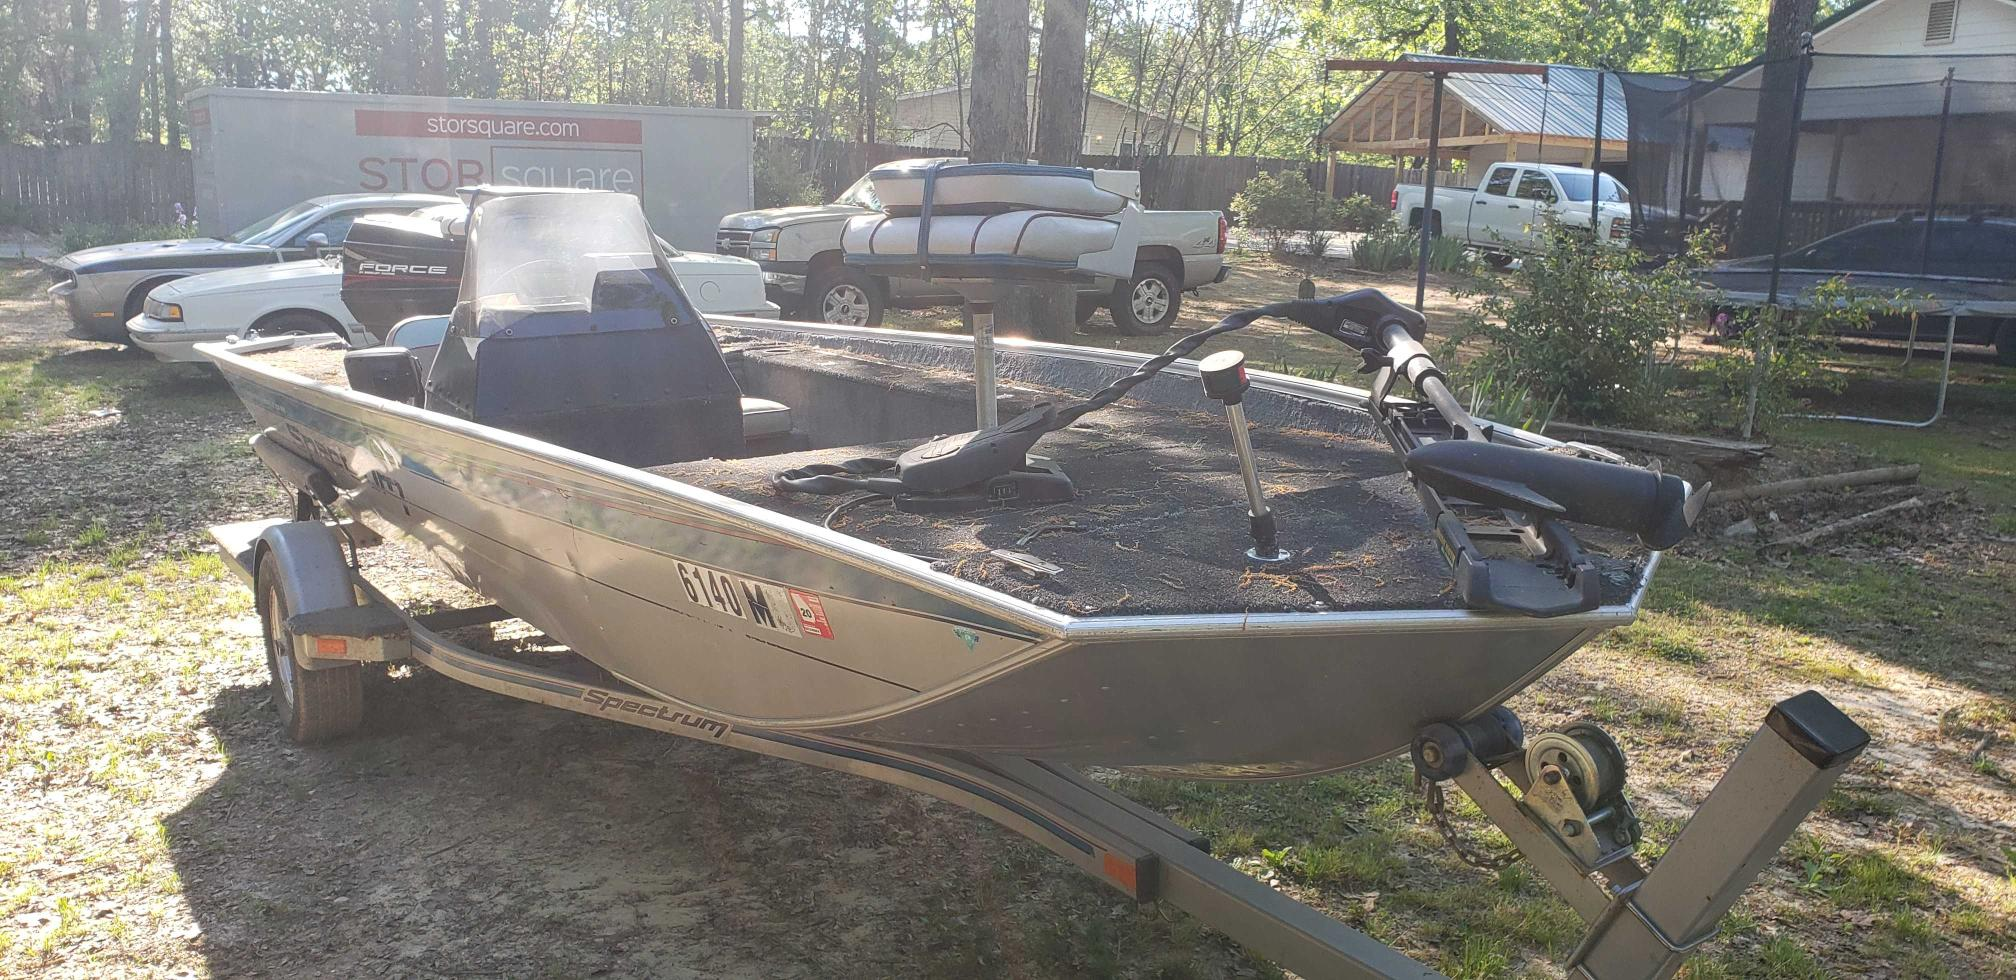 Spec Vehiculos salvage en venta: 1994 Spec Boat